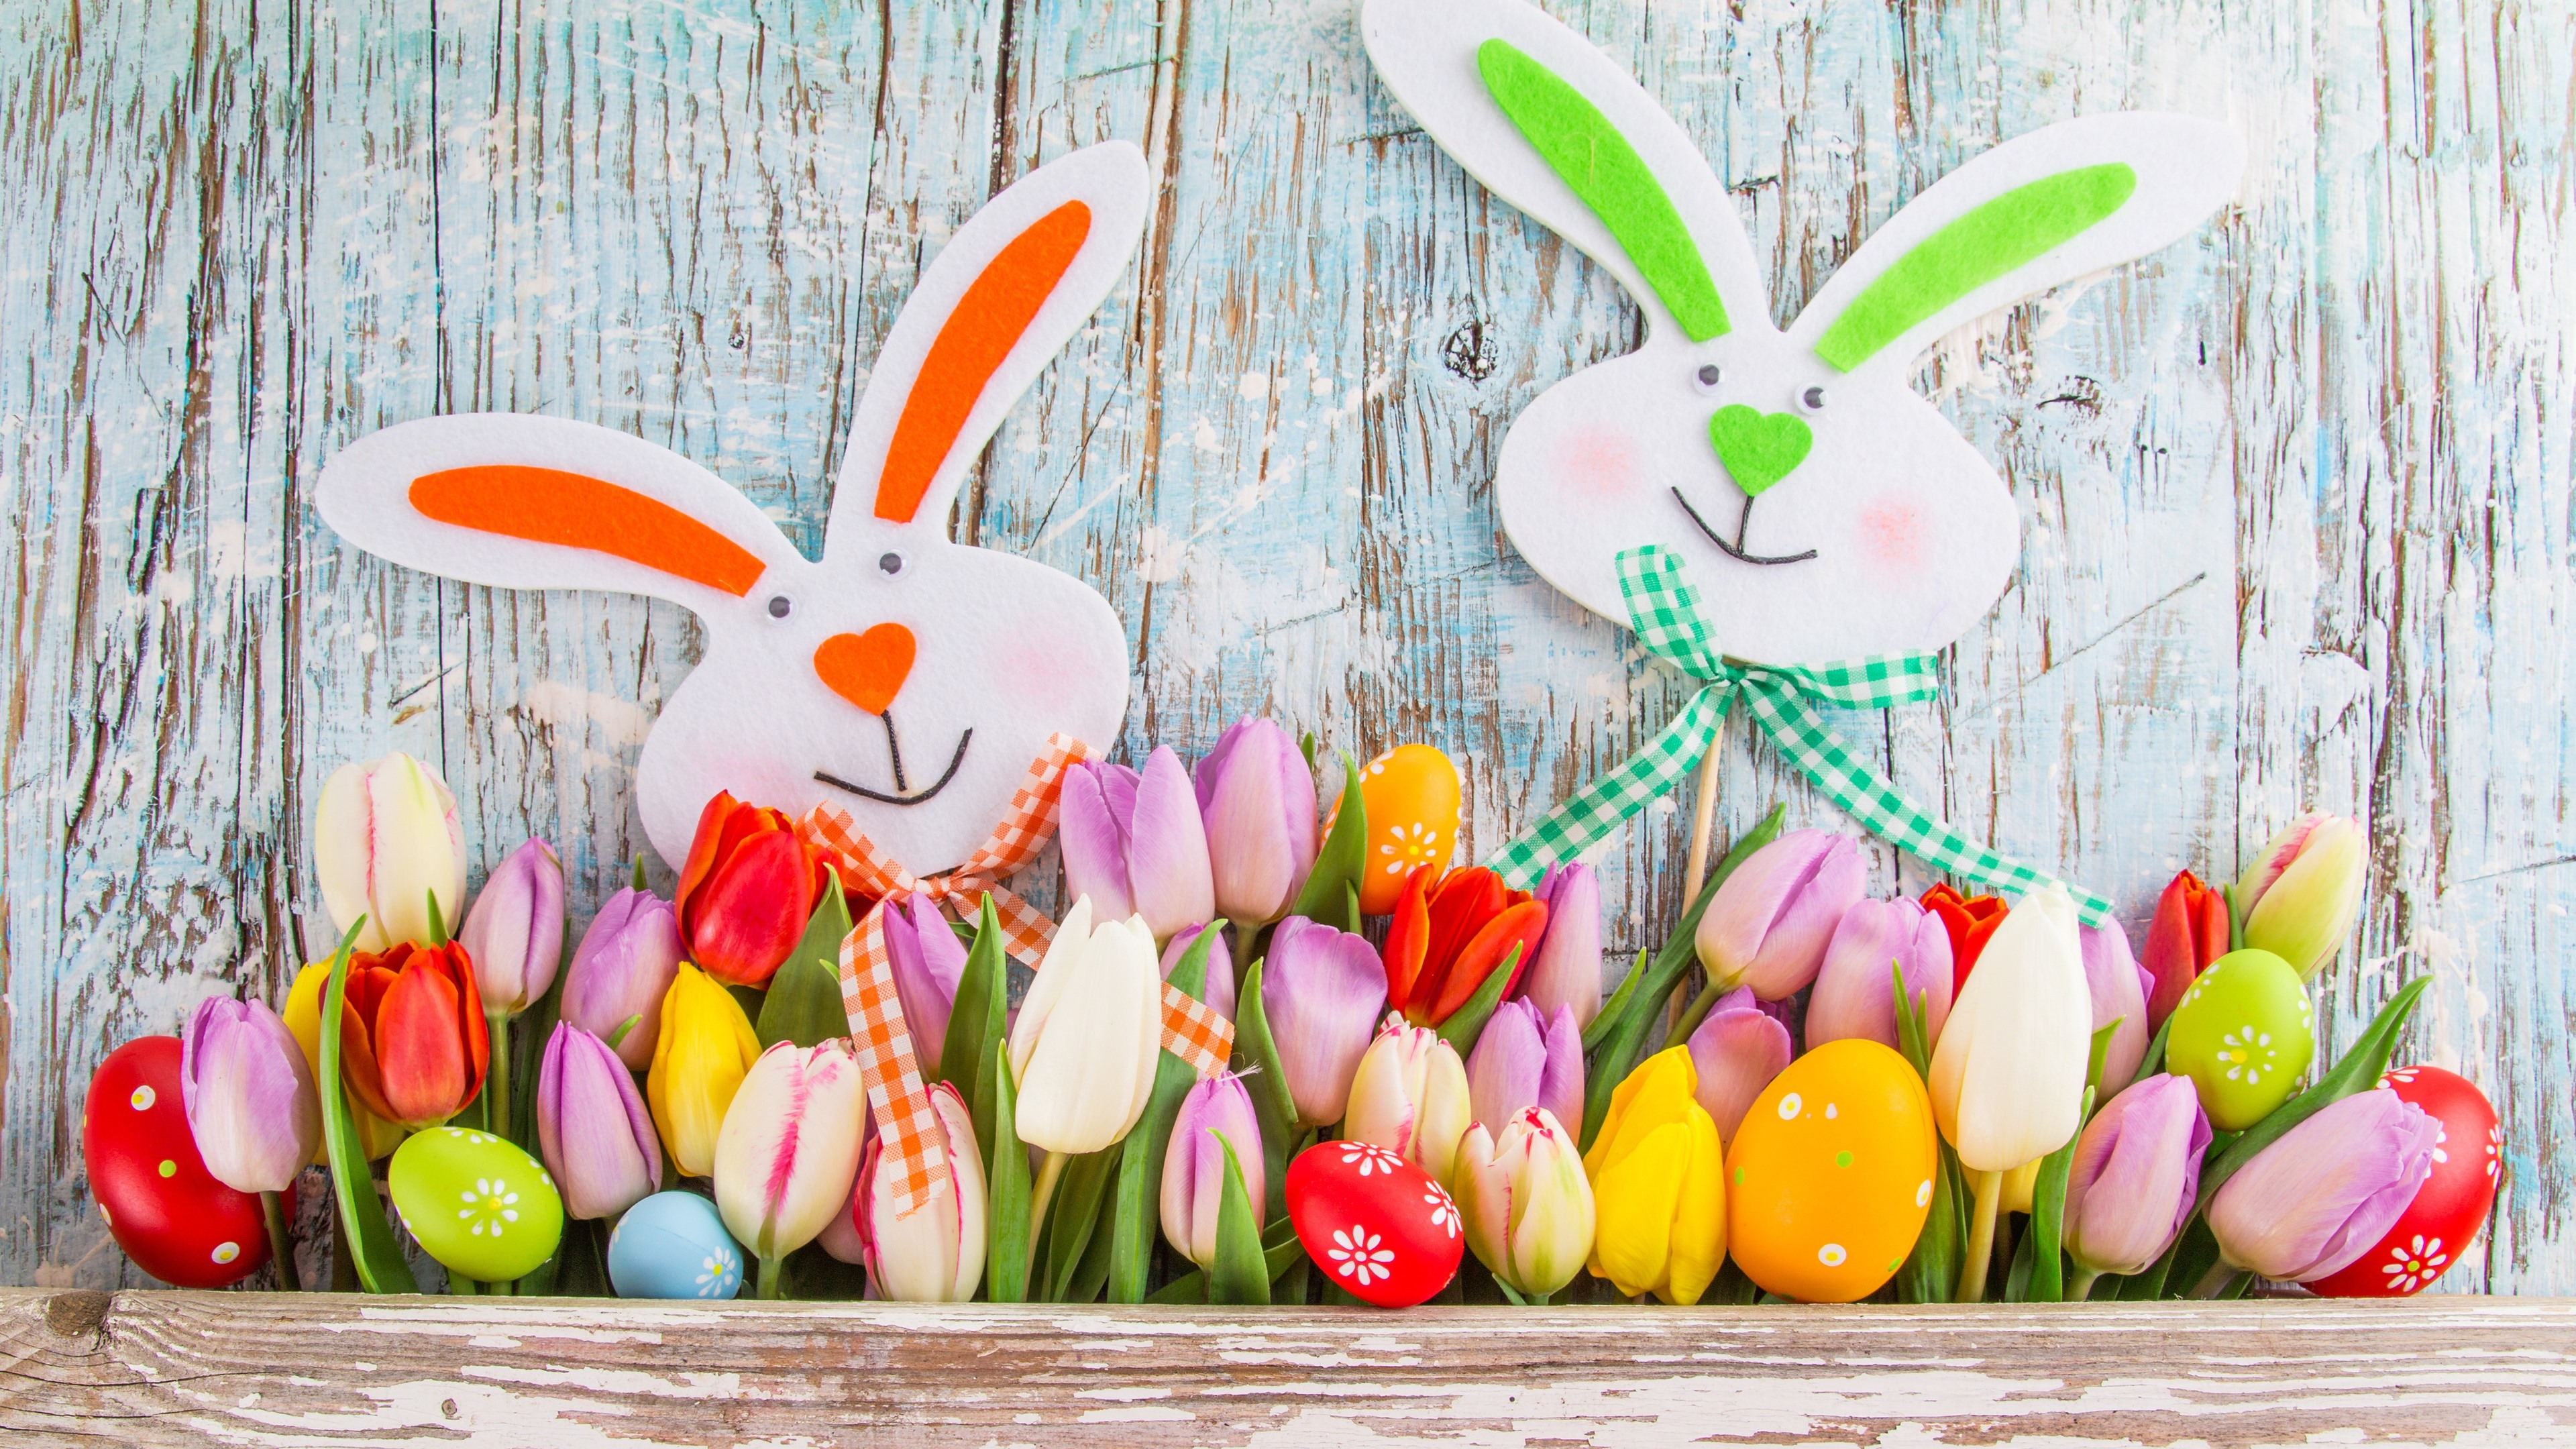 Wallpaper Happy Easter, tulips, colorful, eggs, rabbit 3840x2160 UHD 4K Picture, Image